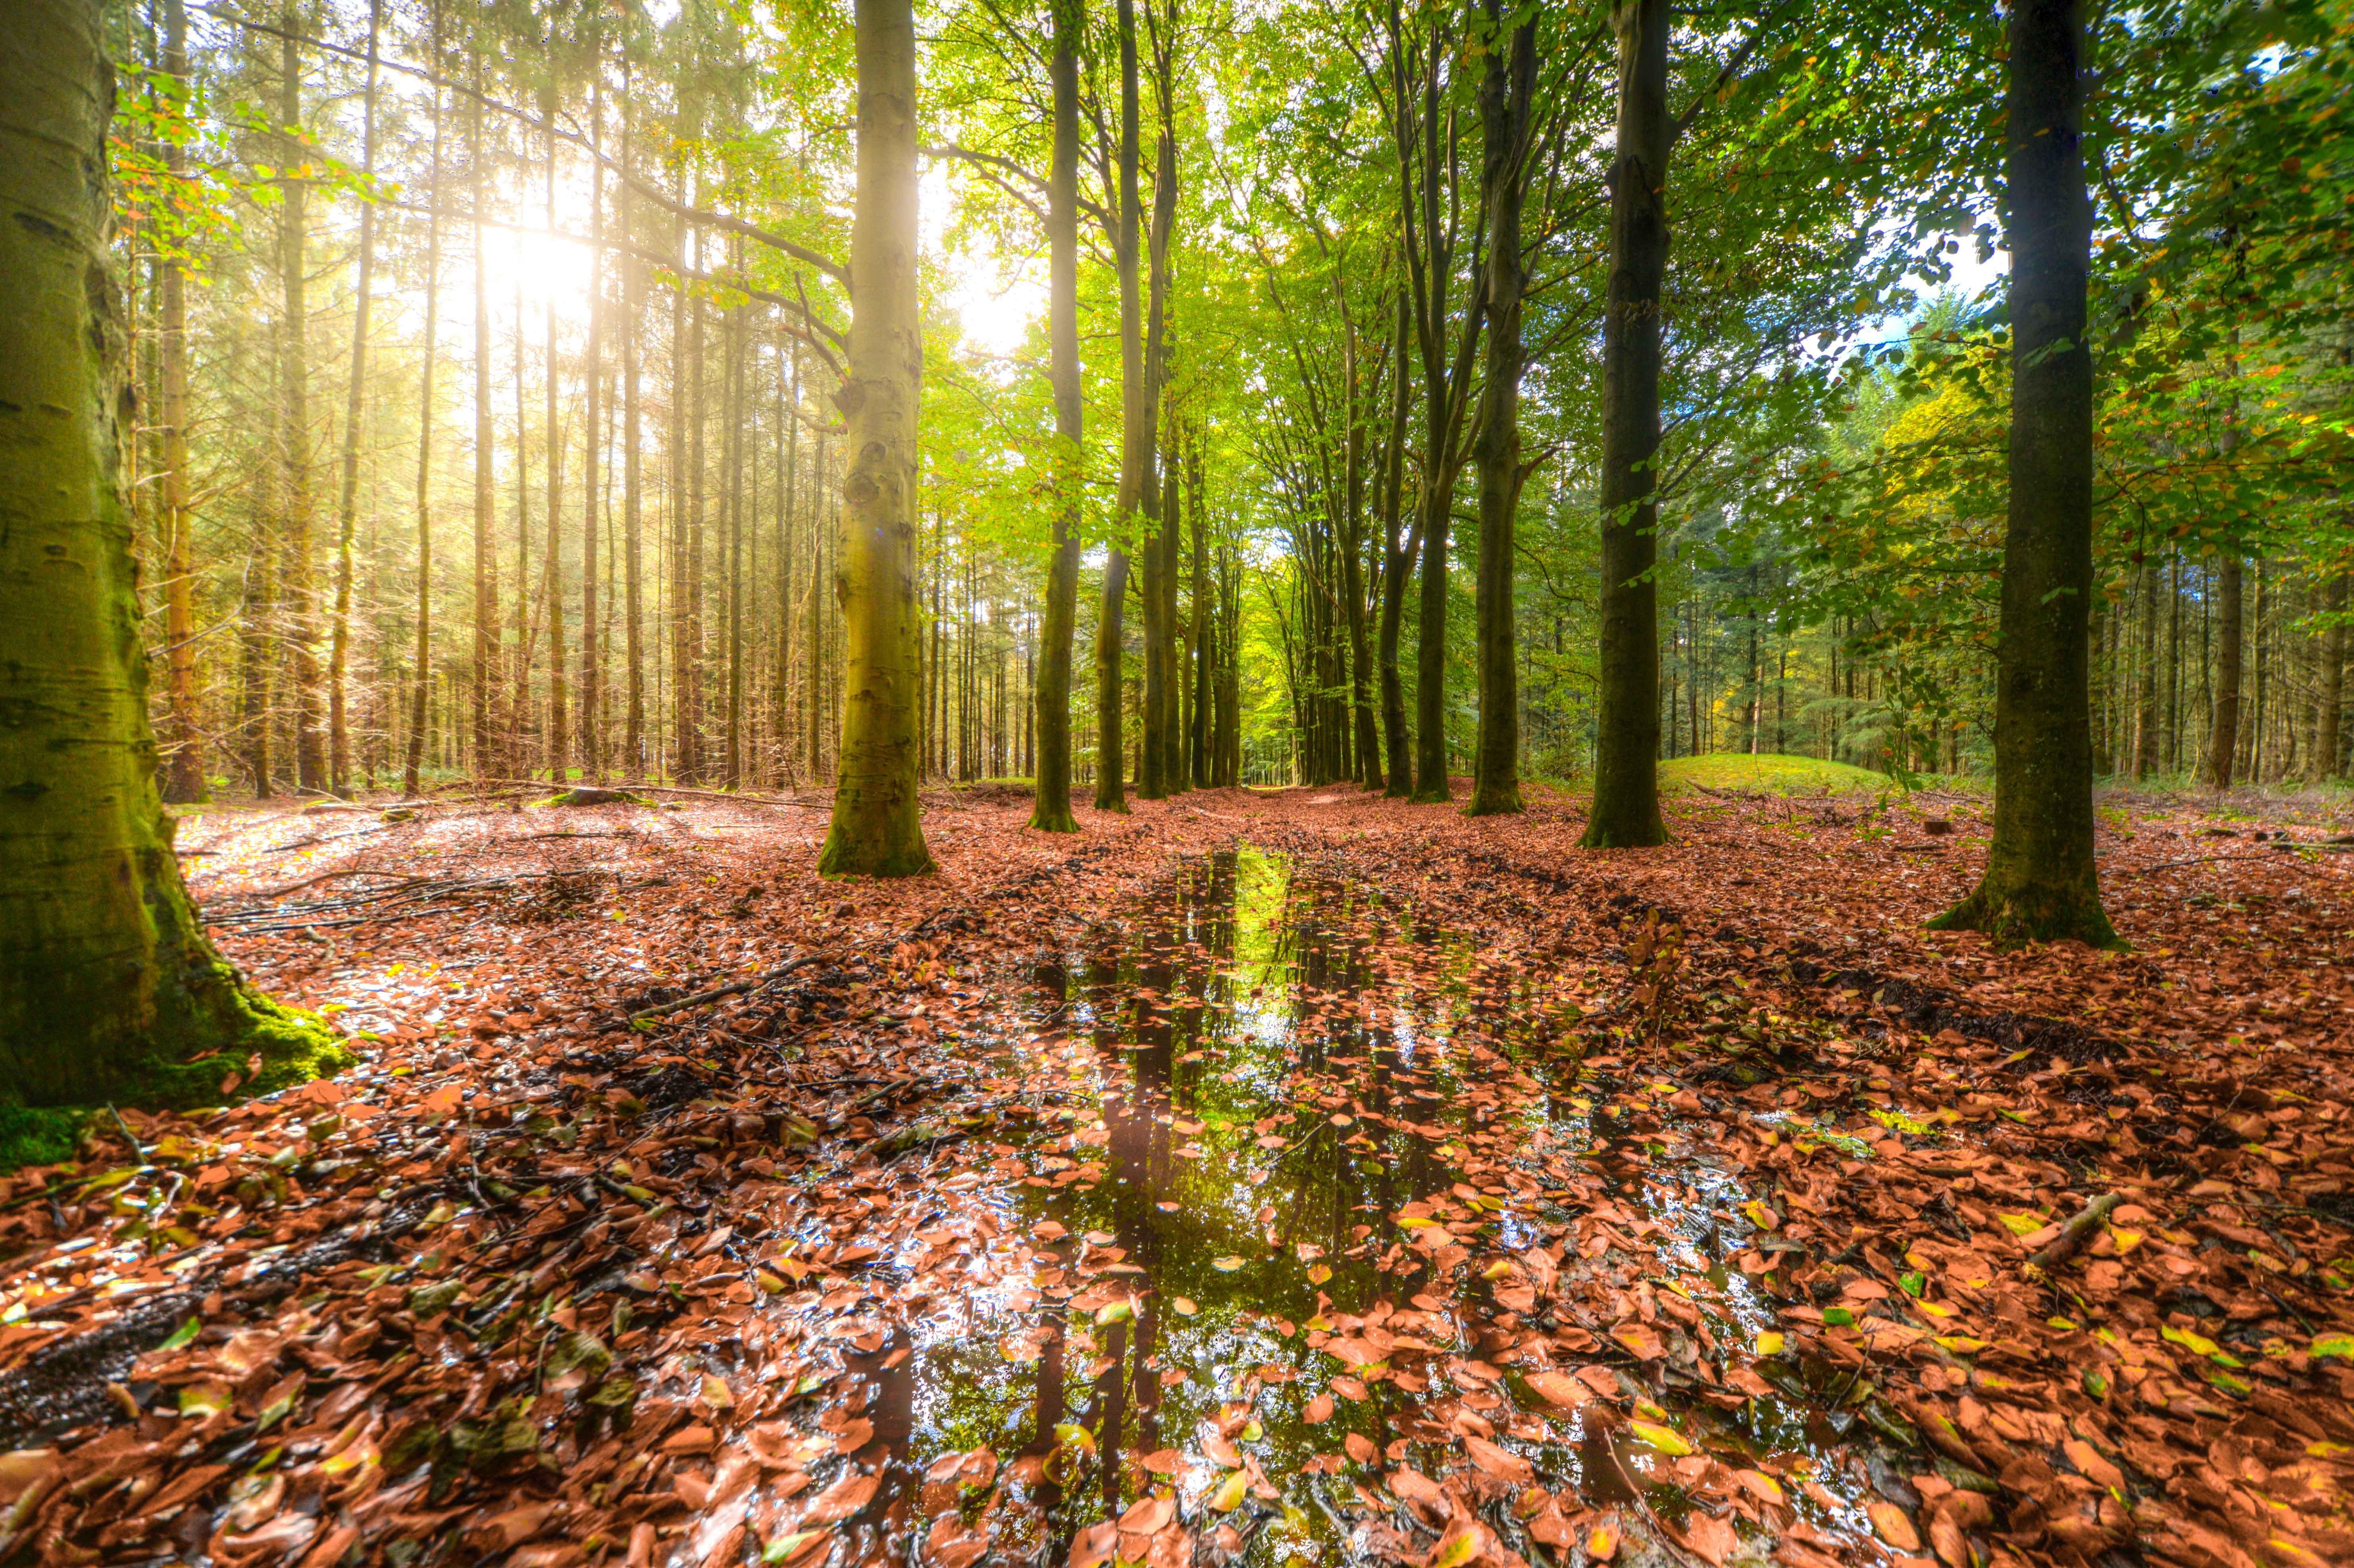 Green Forest With Body of Water Covered With Brown Dried Leaves, Reflections, Scenery, Pathway, Park, HQ Photo